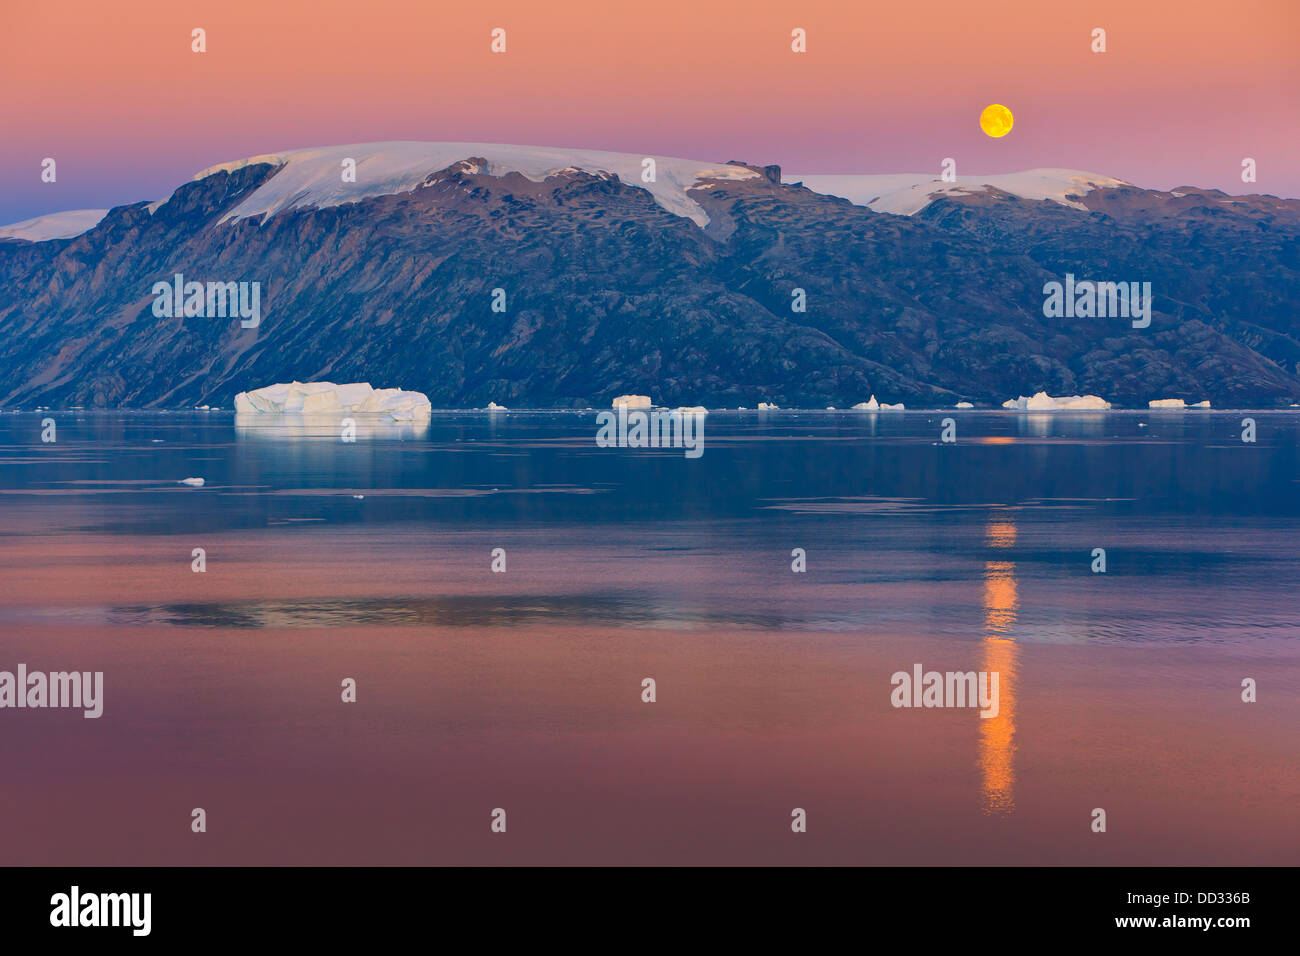 Moonrise in the Røde Fjord, Scoresby sund, Greenland - Stock Image